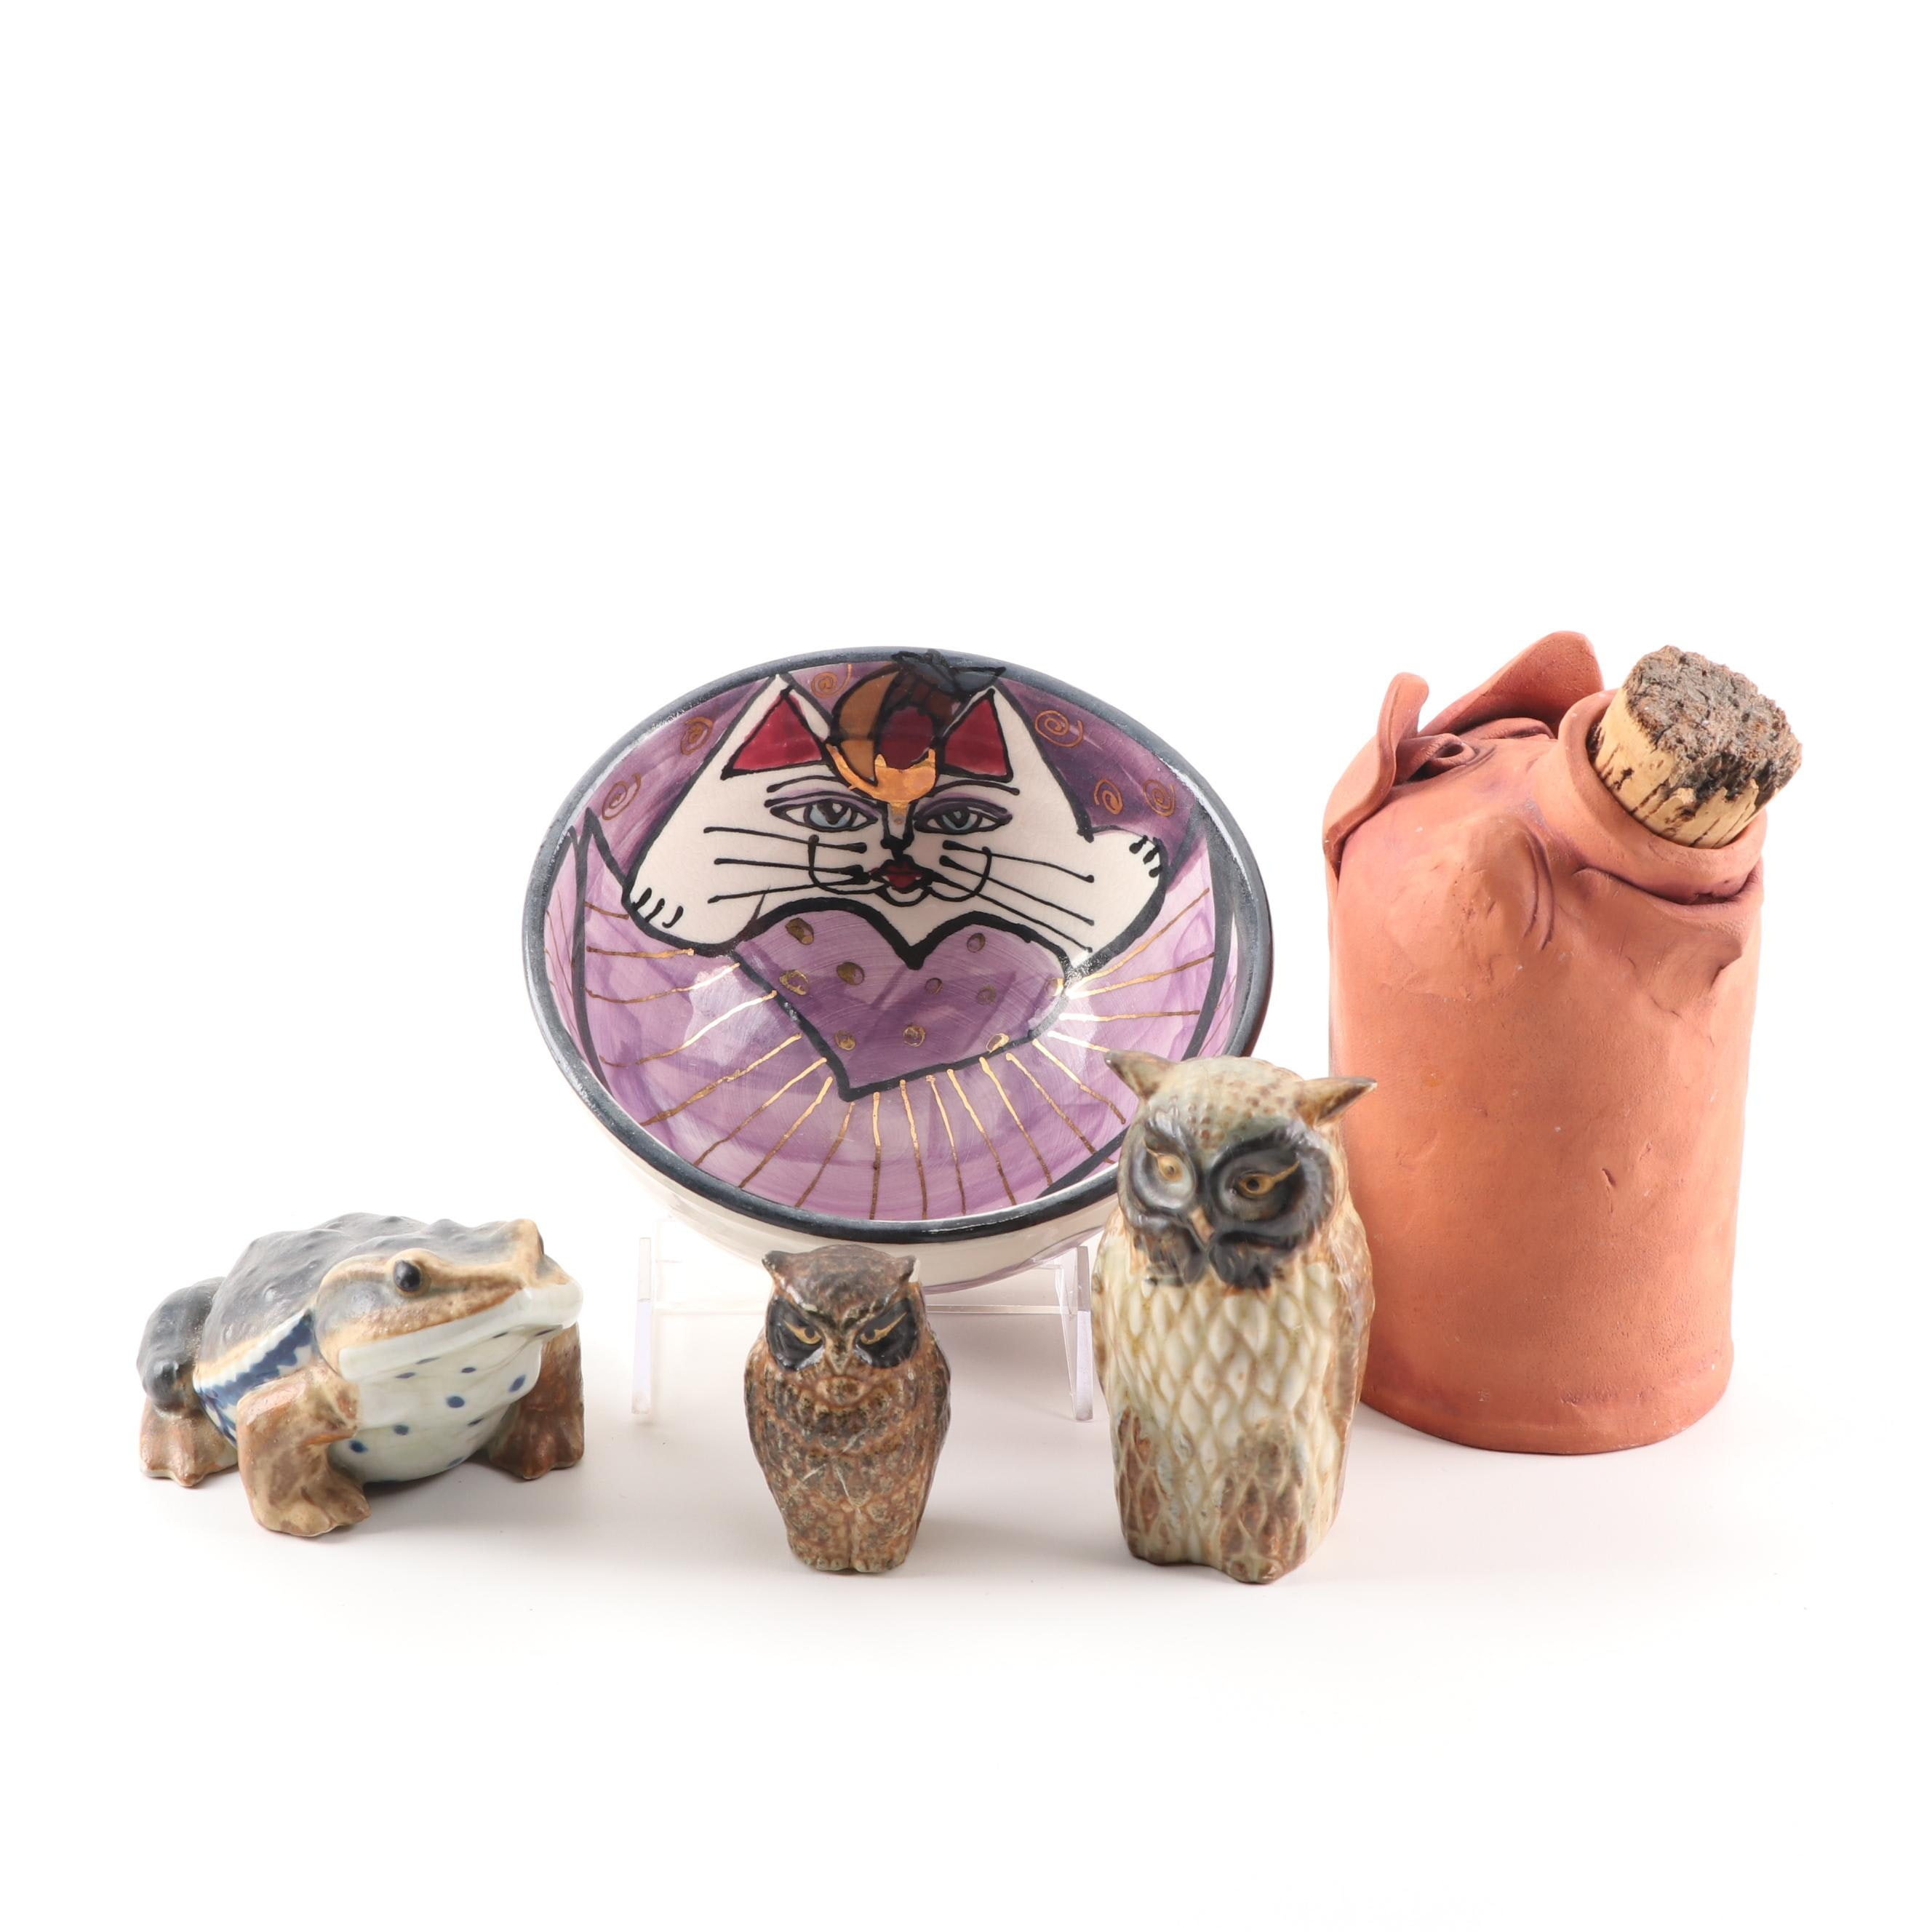 Art Pottery Bowl, Figurines, and Bottle